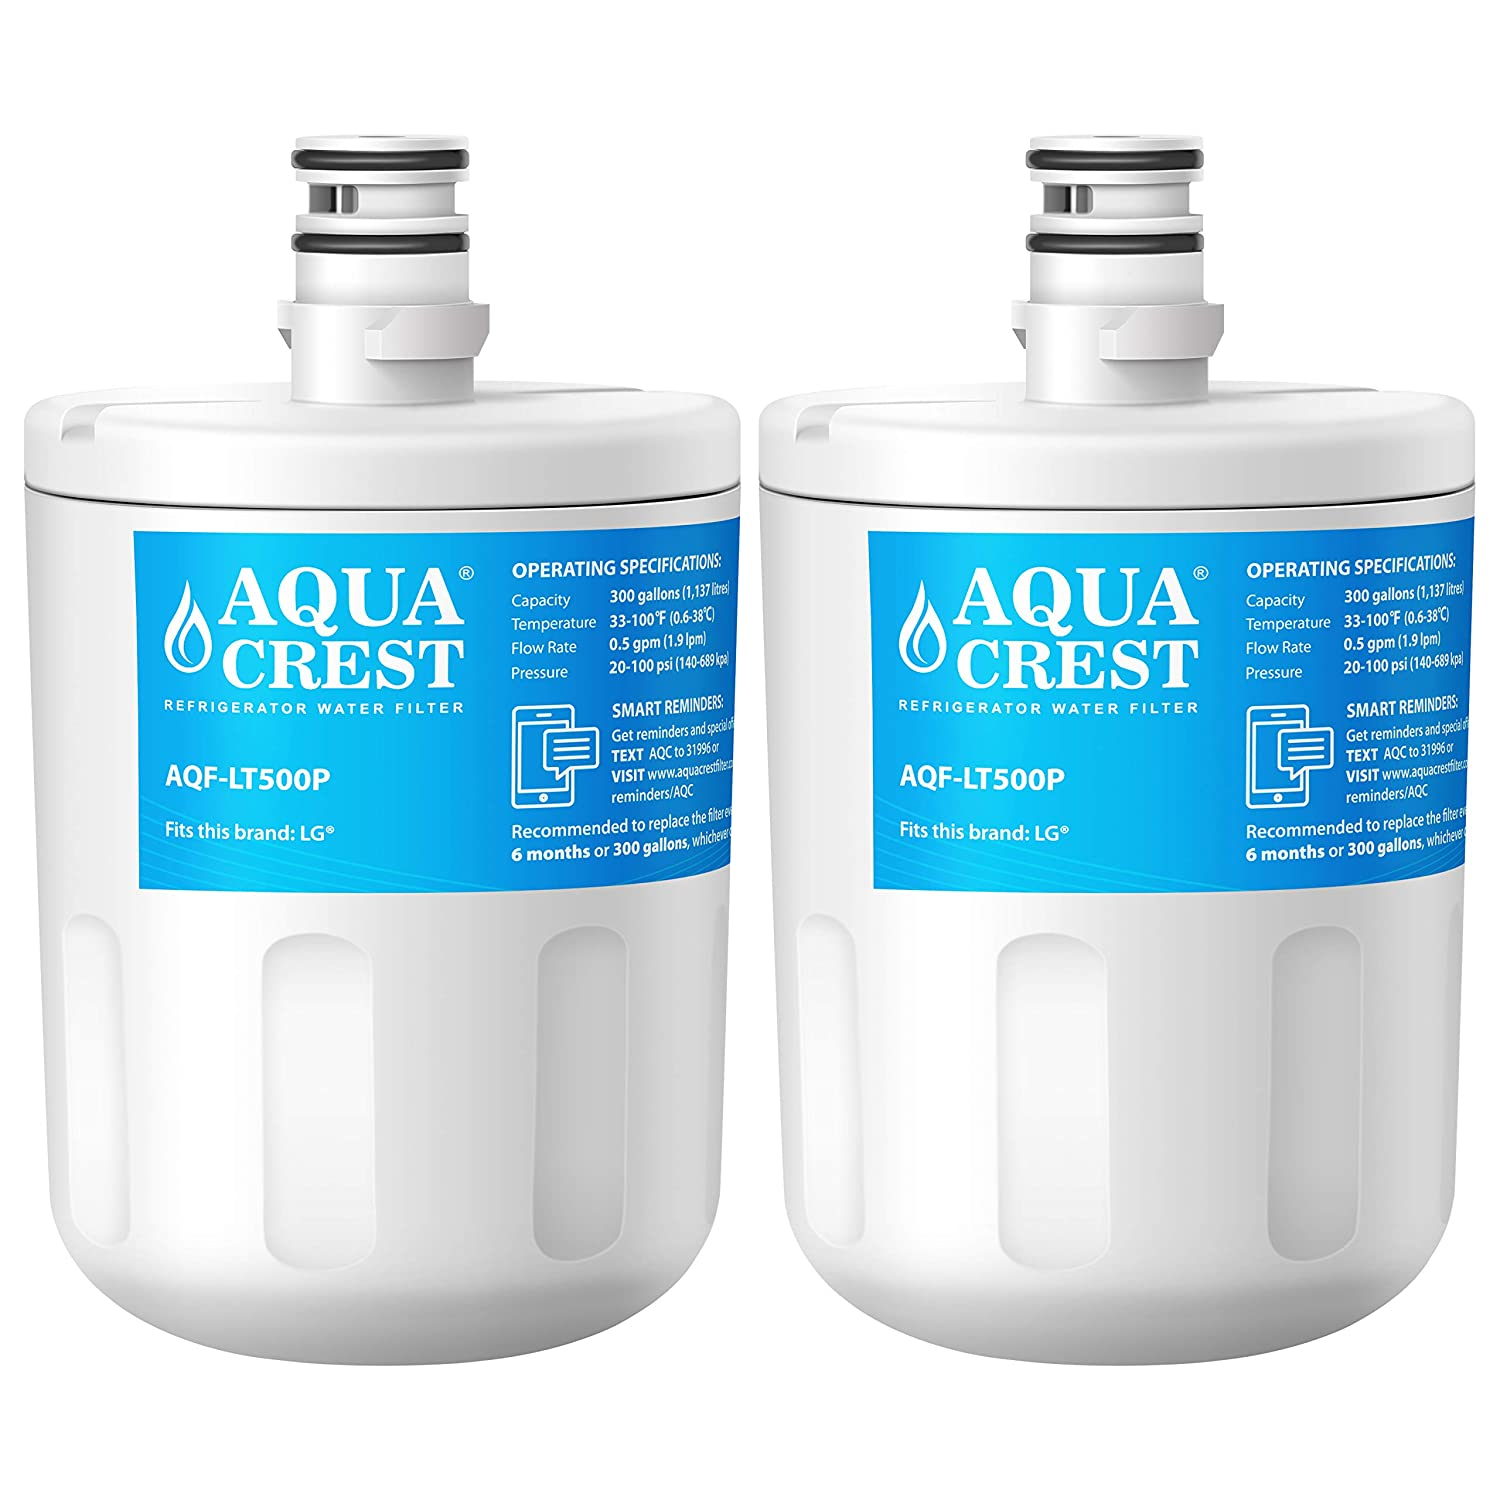 AQUACREST Refrigerator Water Filter, Compatible with LG 5231JA2002A, LT500P, GEN11042FR-08, LFX25974ST, ADQ72910901, ADQ72910907, Kenmore 9890, 46-9890, 469890 (Pack of 2)